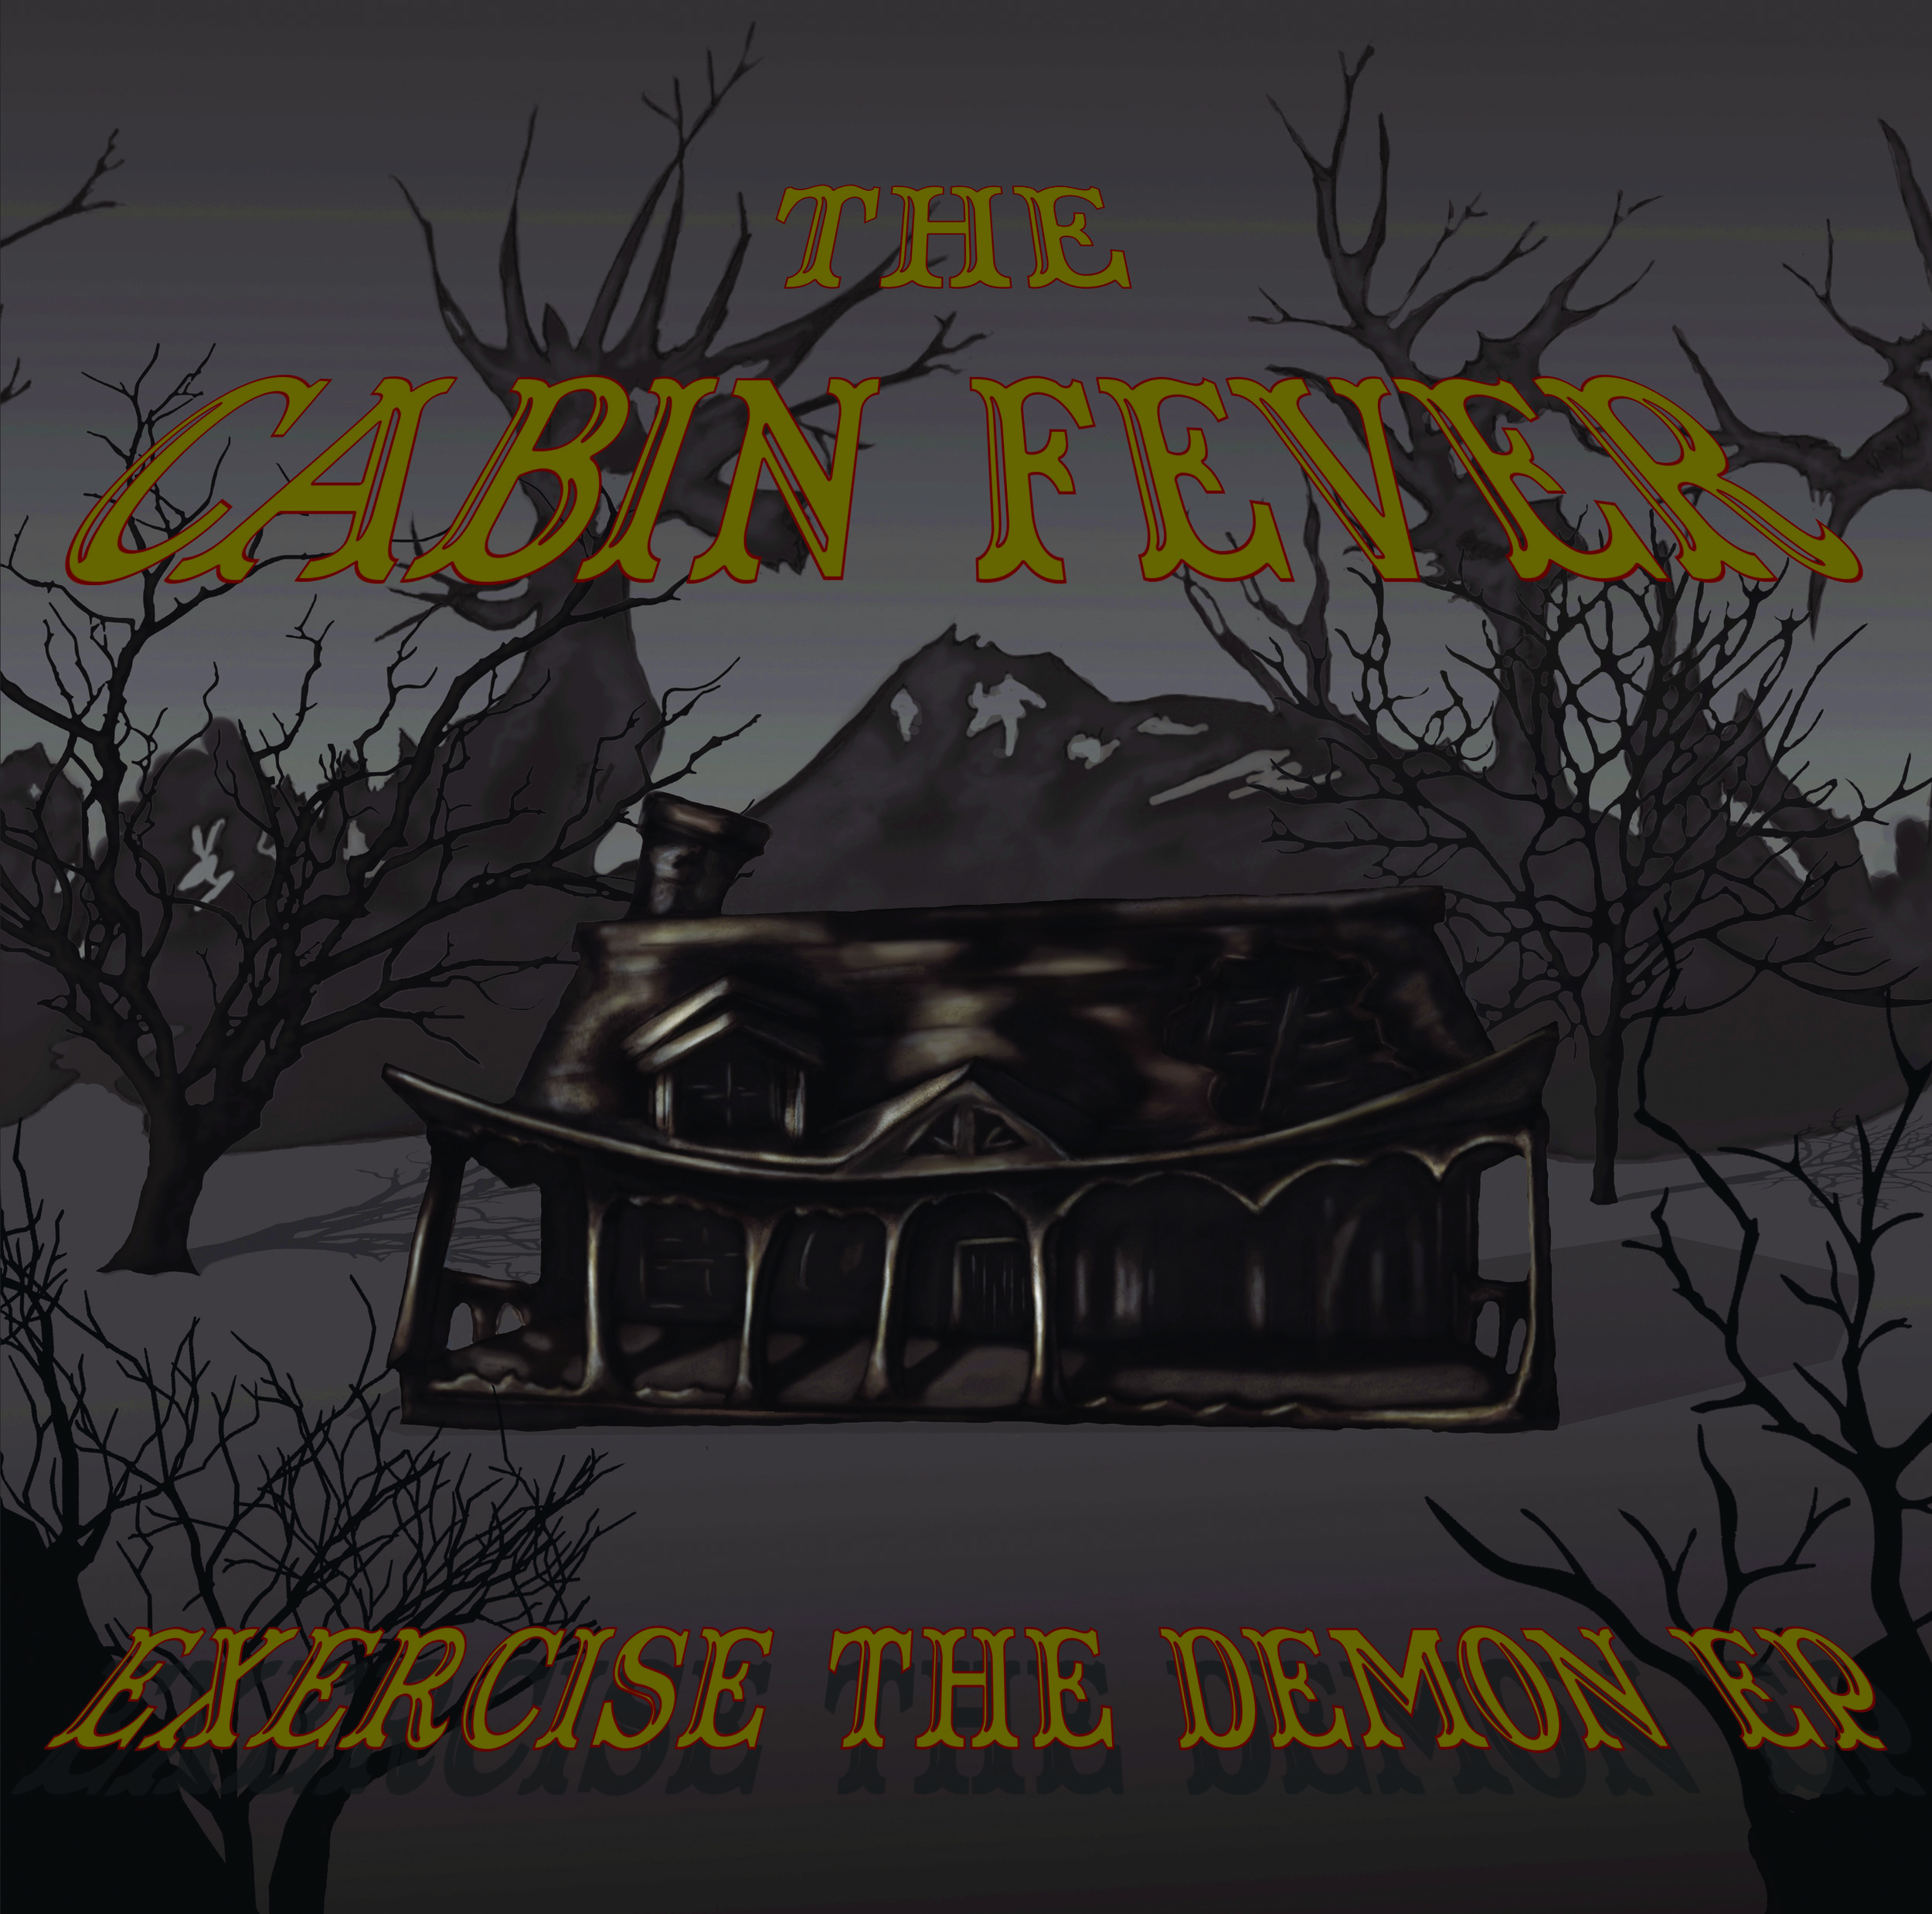 The Cabin Fever Exercise the demon EP coverart.jpg